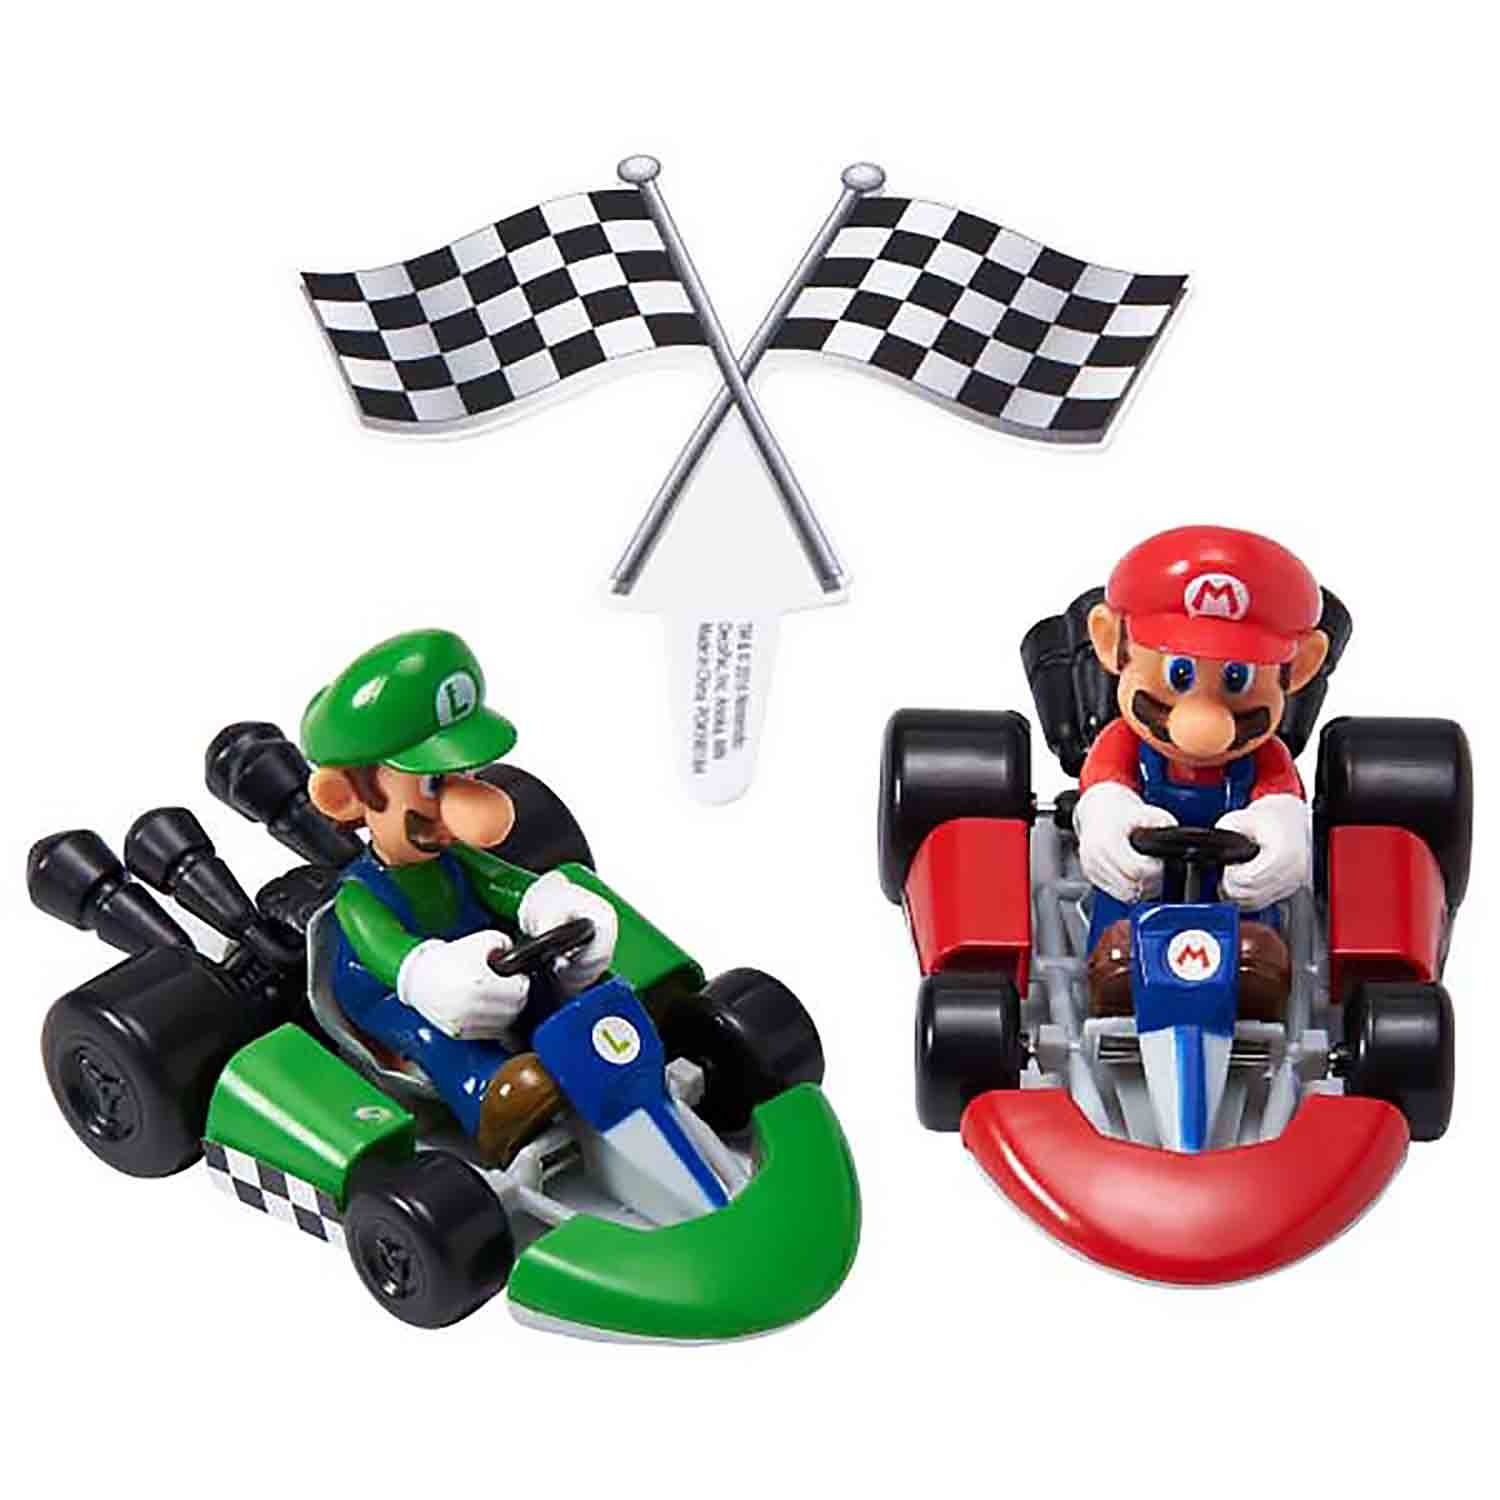 Super Mario Kart Decoset